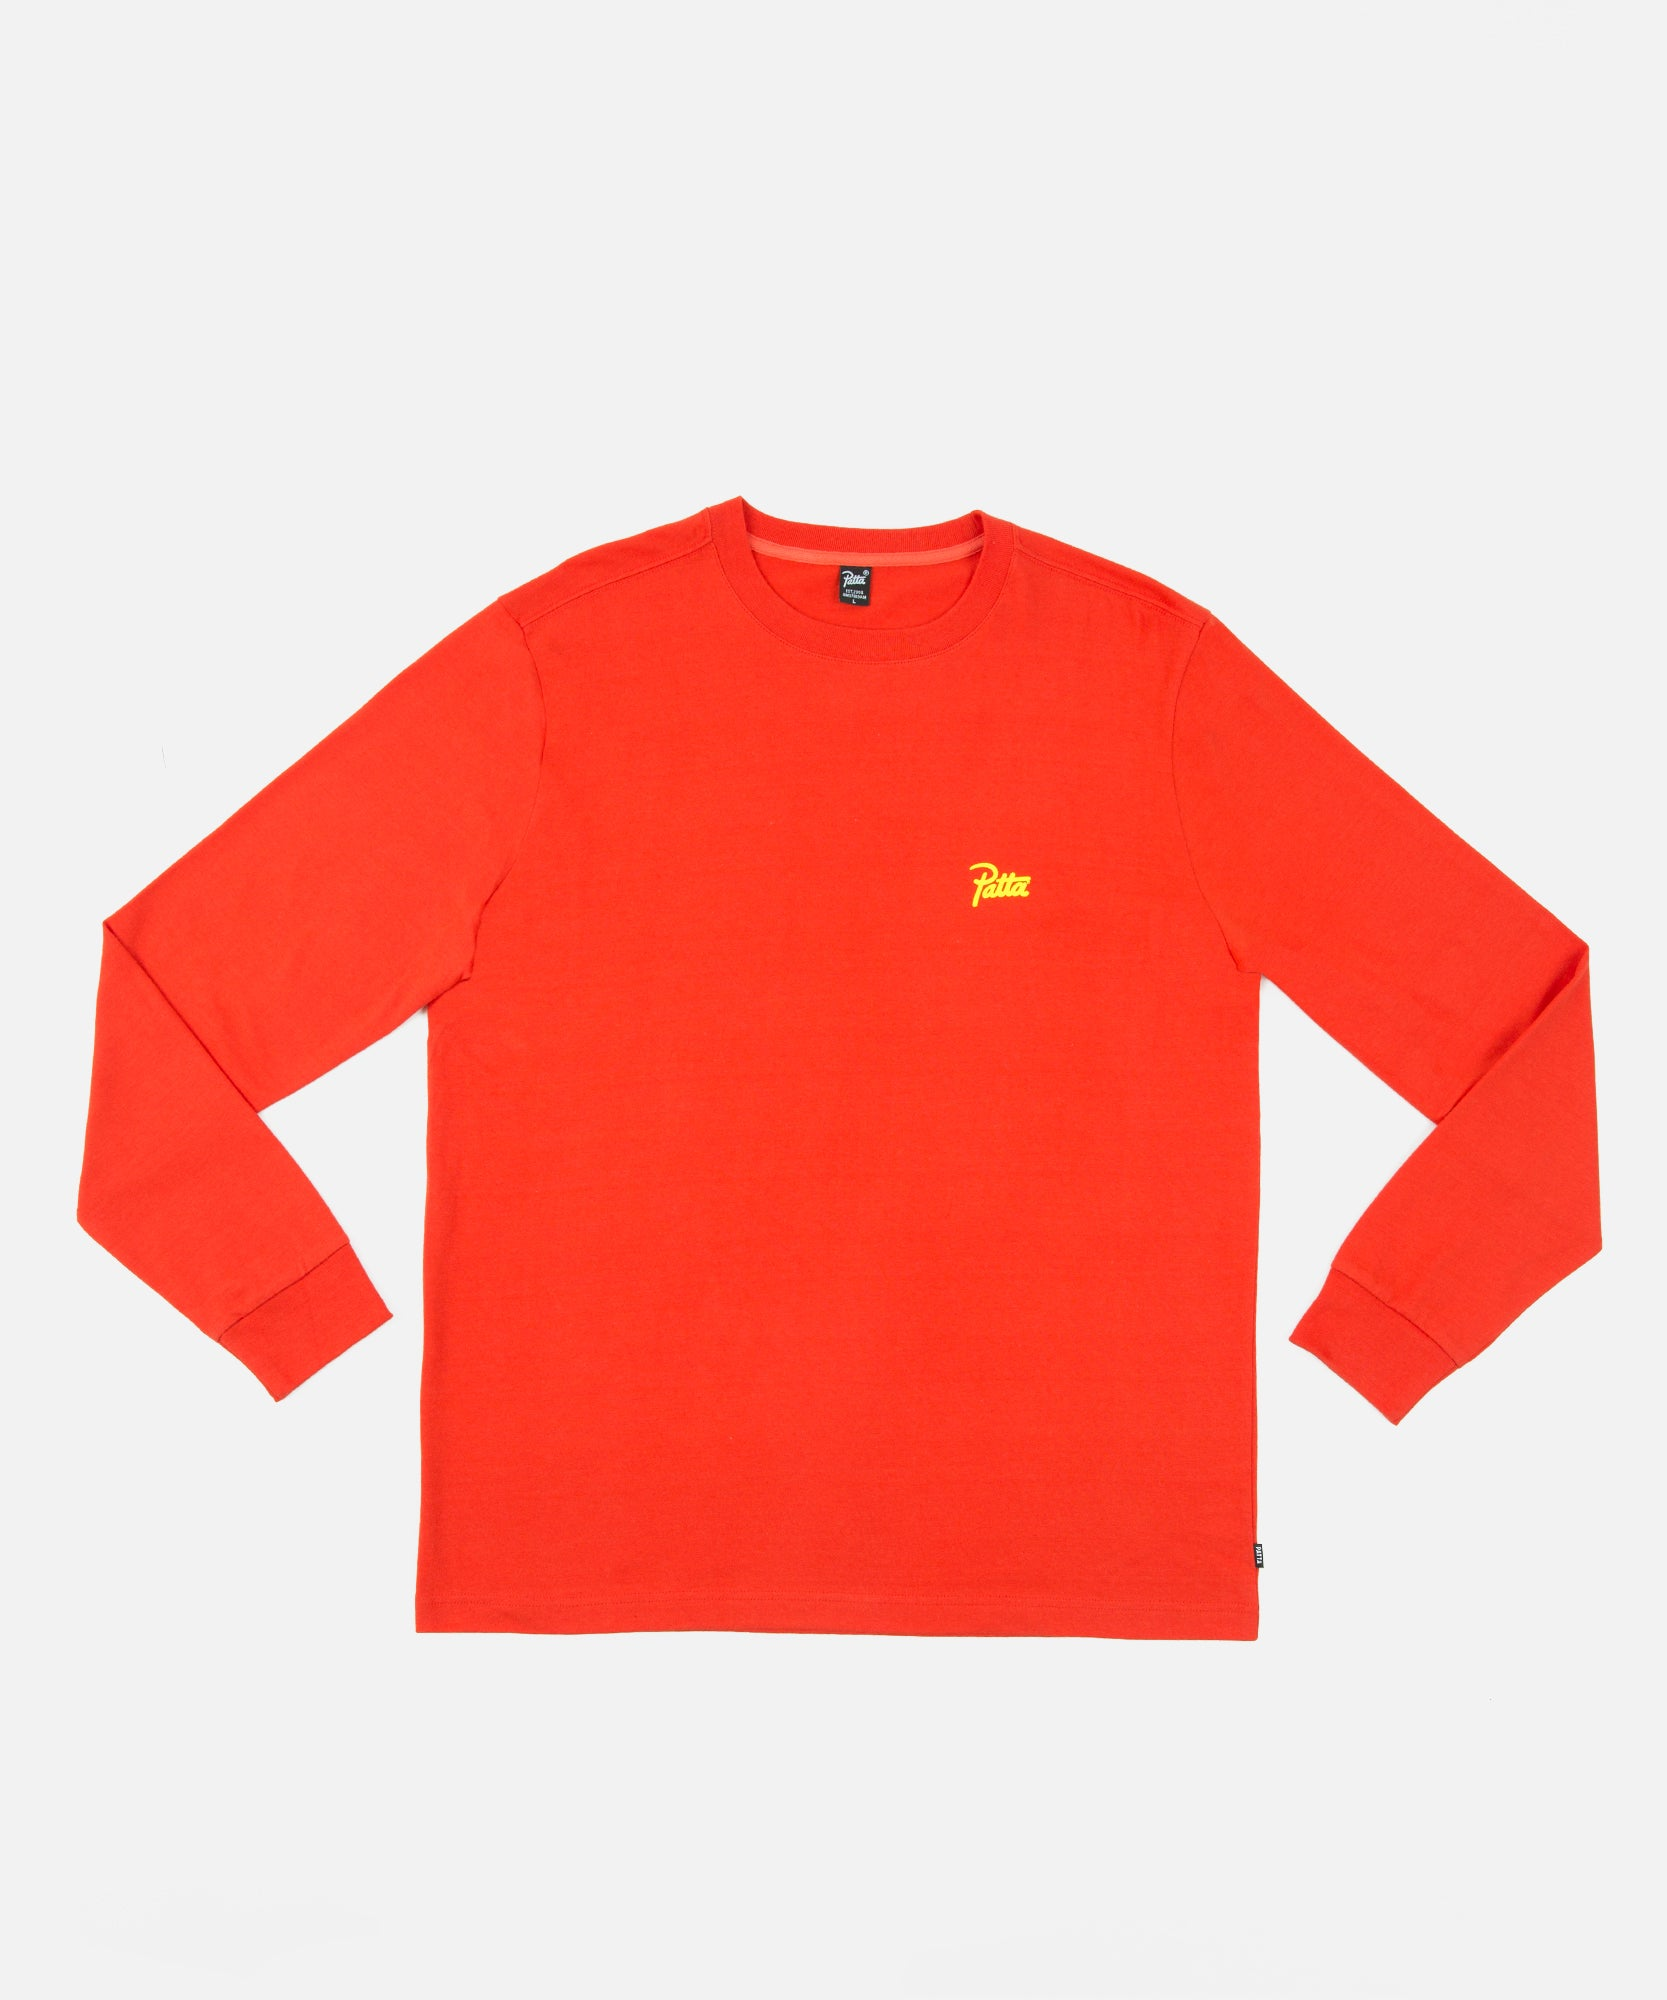 Patta Ratio Longsleeve (Fiery Red)